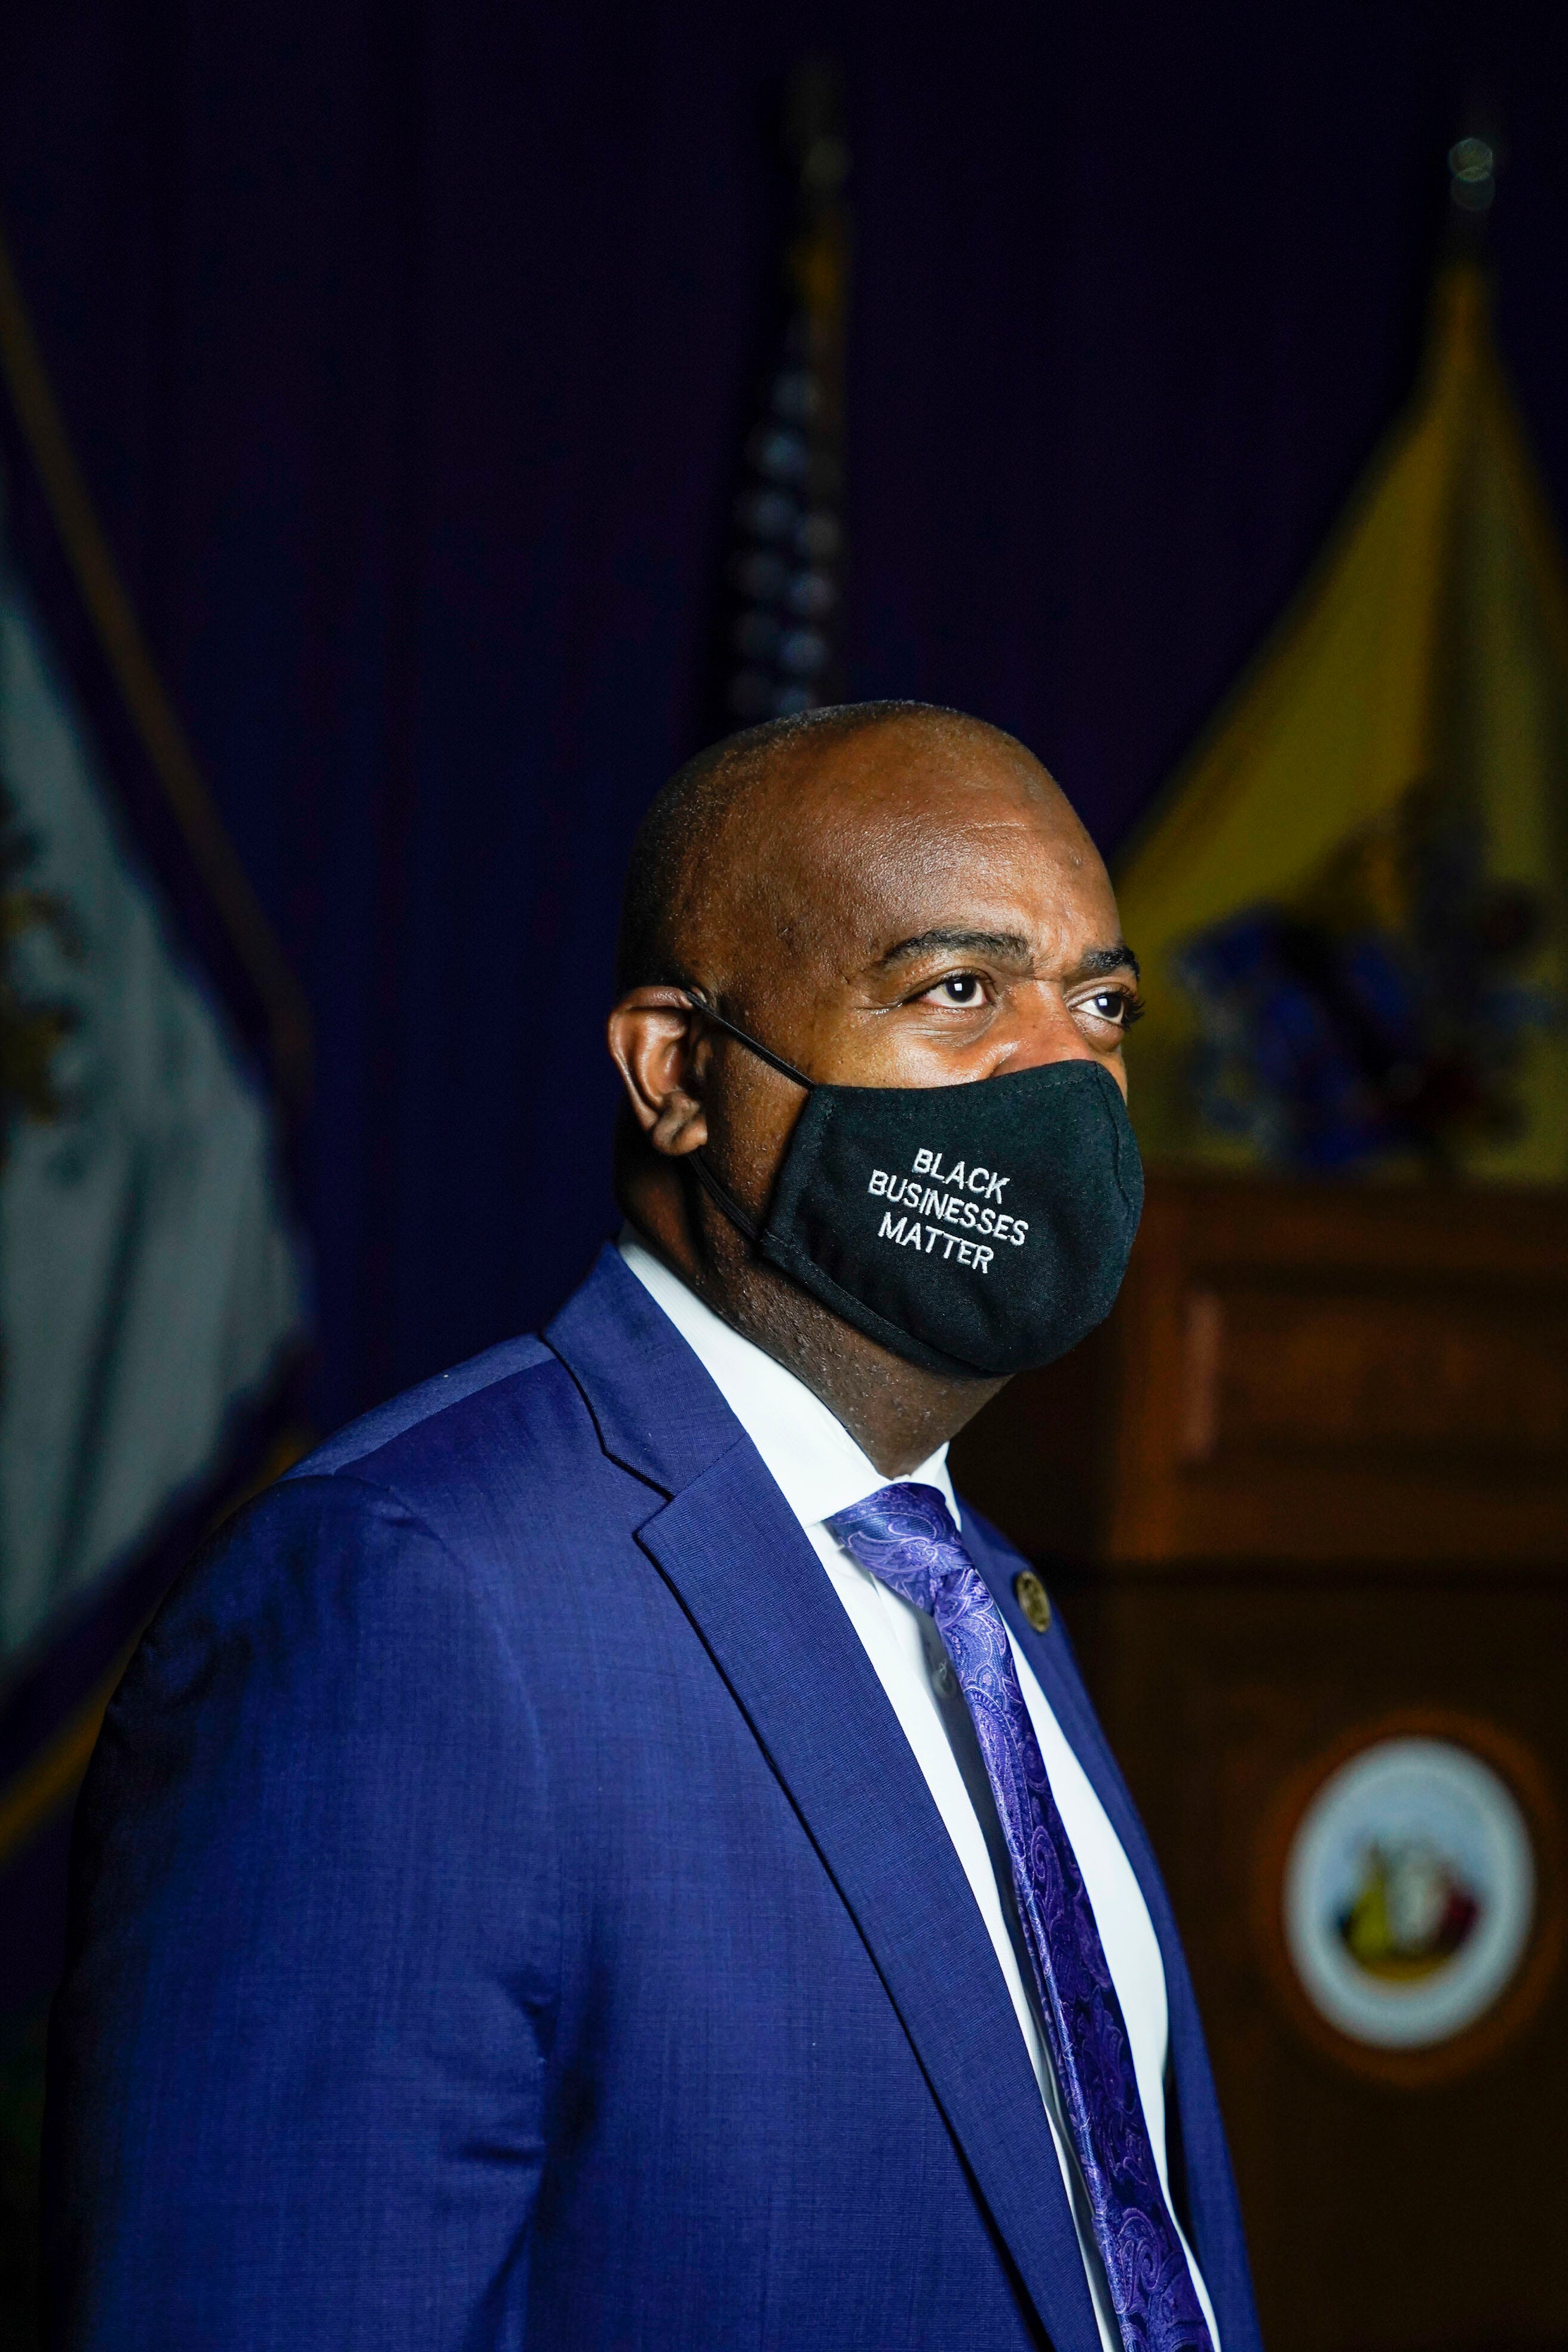 """Newark Mayor Ras J. Baraka says the challenges of dealing with COVID -19 in his city are daunting. """"I'm still on it. I'm like the mean father right now. I have to wear that until we feel completely comfortable moving forward."""""""